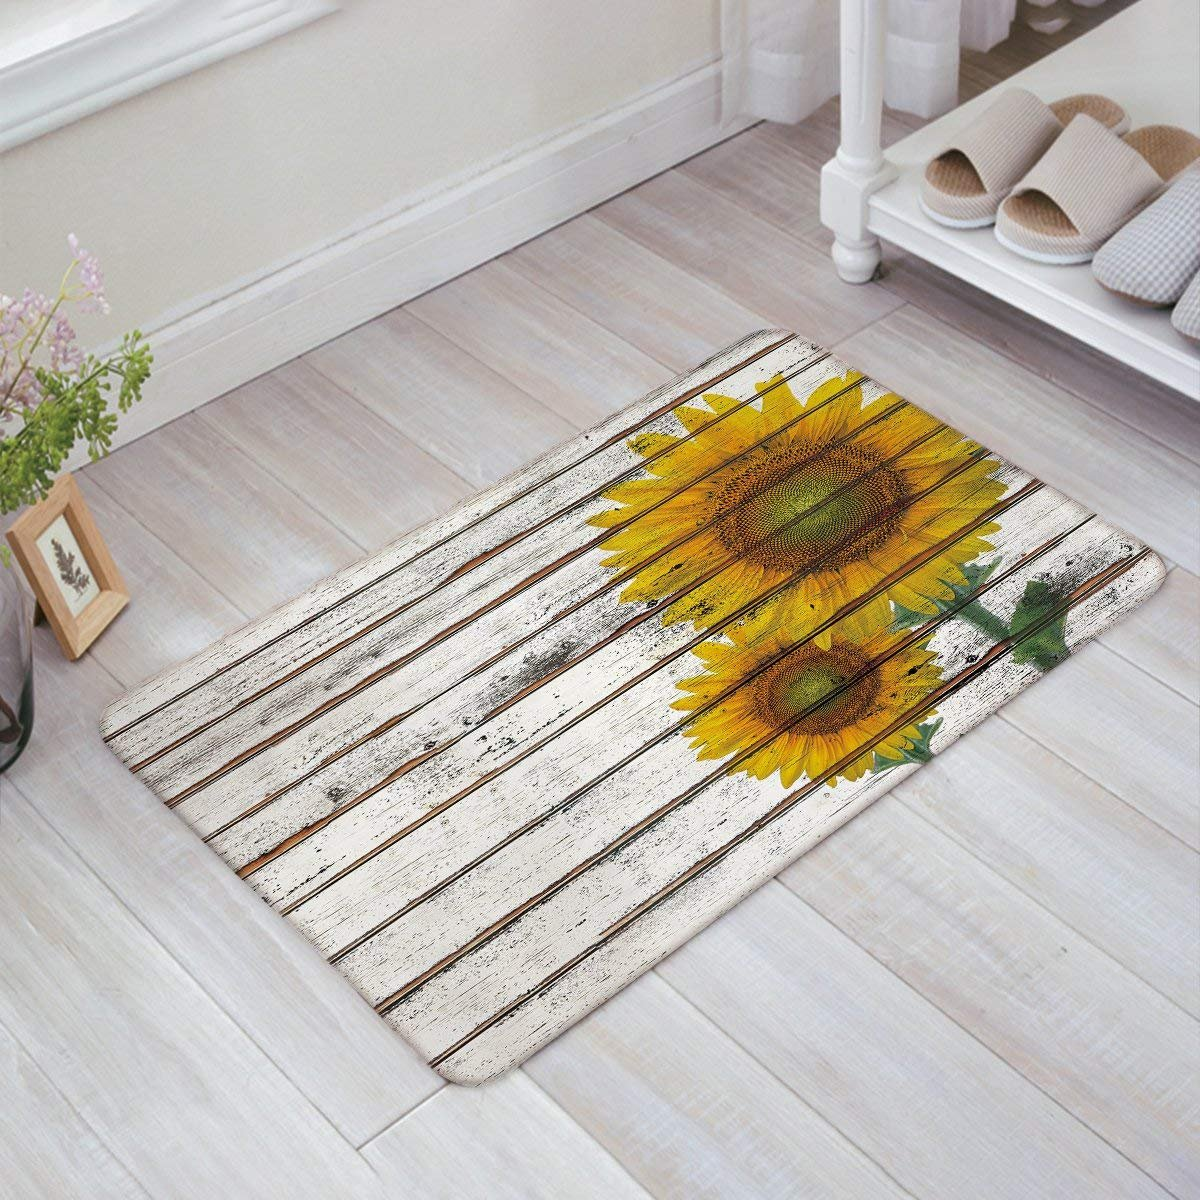 Infinidesign Non Slip Front Door Mat Shoes Scraper Entryway Bathroom Rug Patio Porch Home Decor Exterior Welcome 30''x18'' Sunflower on a Wooden Board by Infinidesign